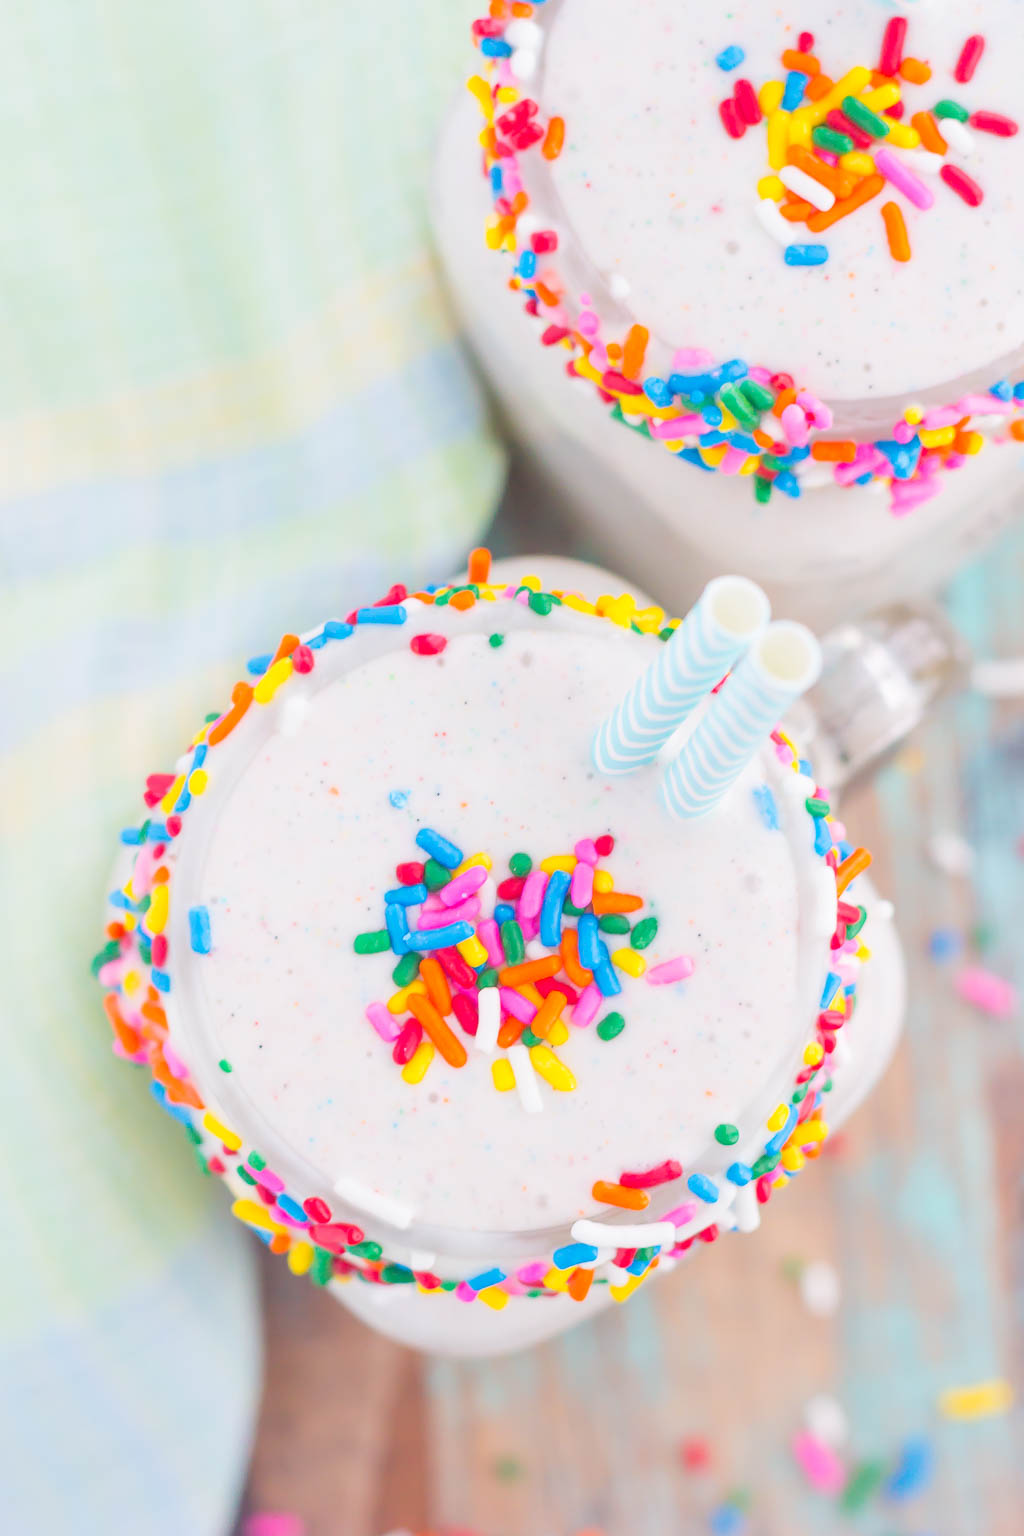 Creamy vanilla ice cream, swirled with funfetti cake batter mix creates this smooth and indulgent Funfetti Cake Batter Shake!